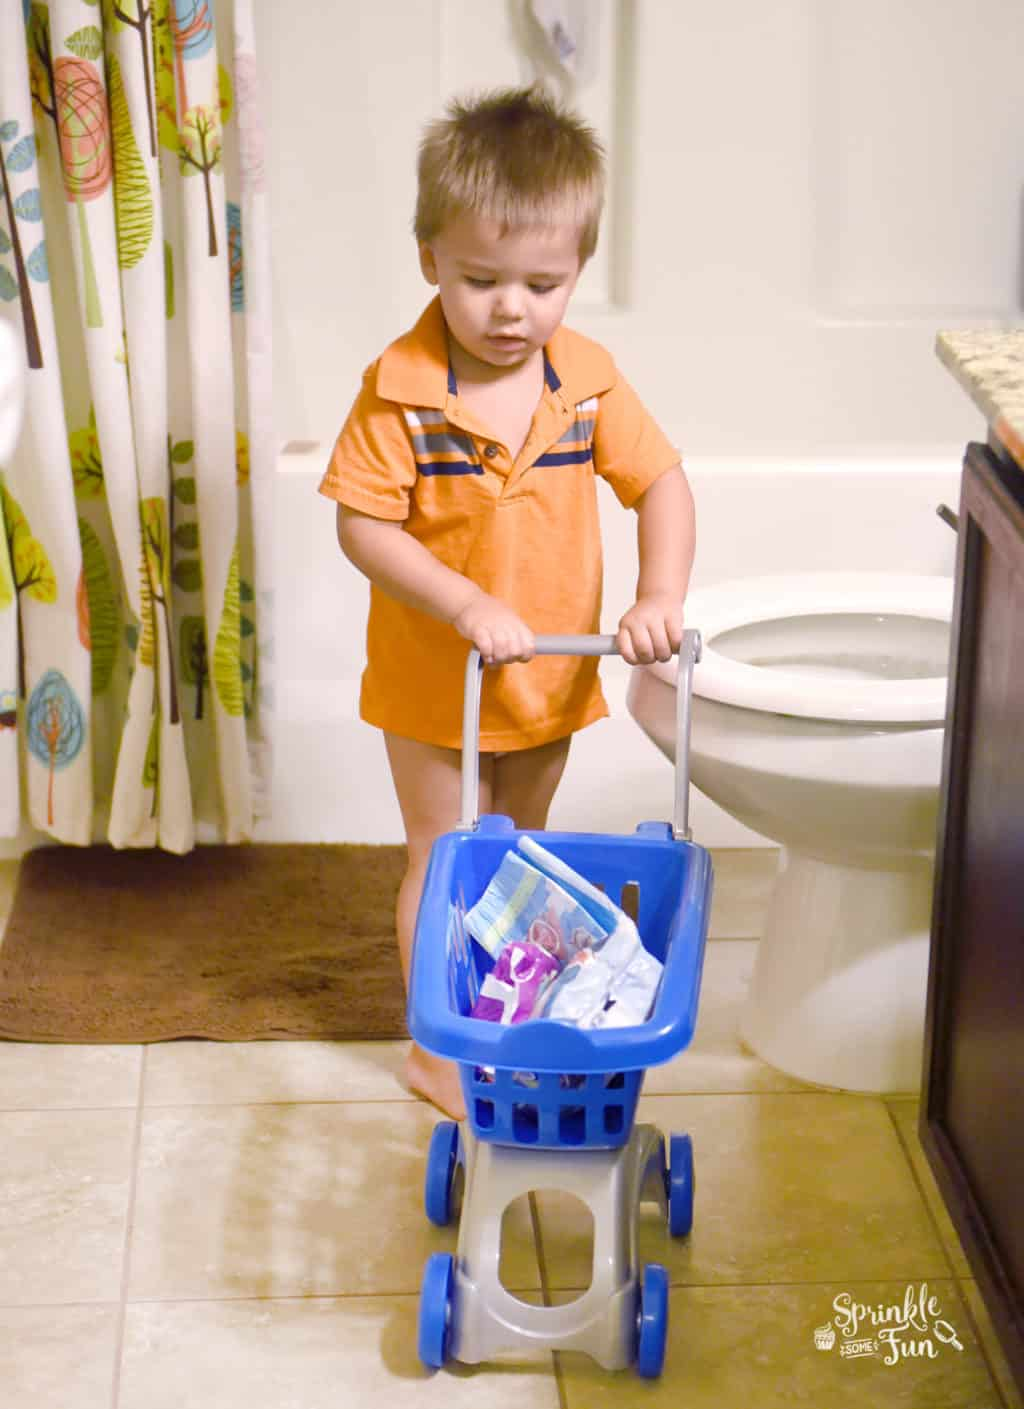 Potty Training Shopping Game.  Play a fun shopping game to teach your toddler how to use the potty and let them